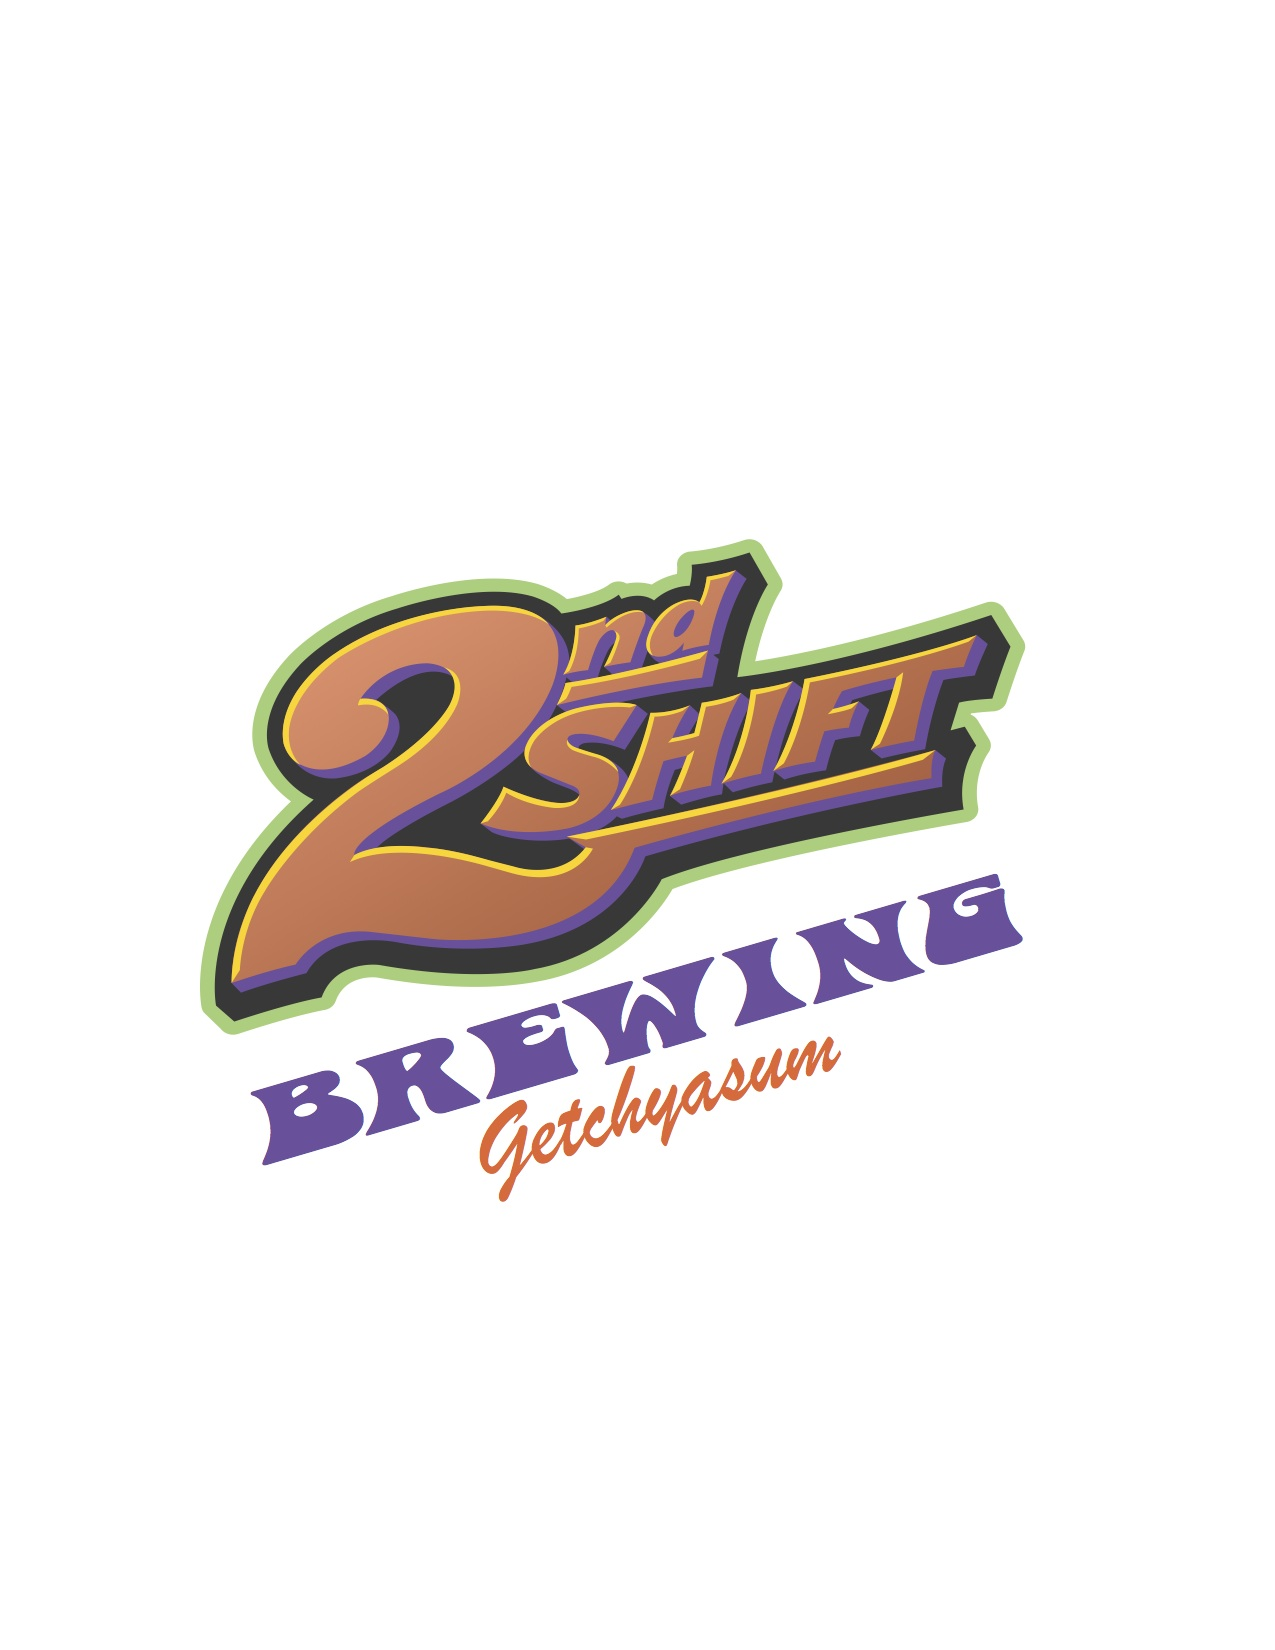 Friday, February 24th, A Night With 2nd Shift Brewing